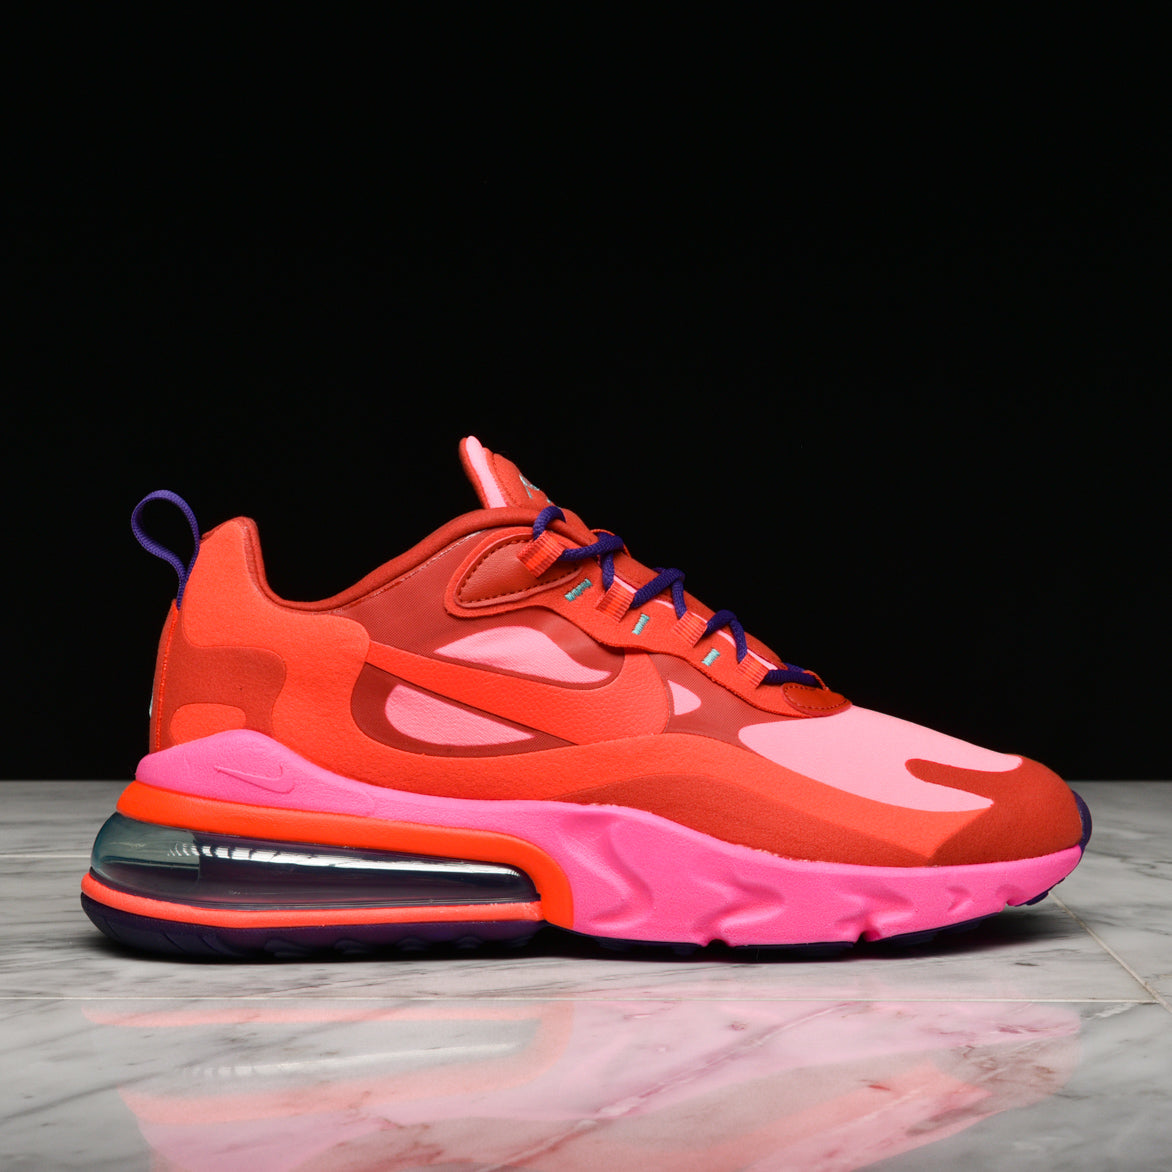 Air Max 270 React Mystic Red Bright Crimson Lapstoneandhammer Com